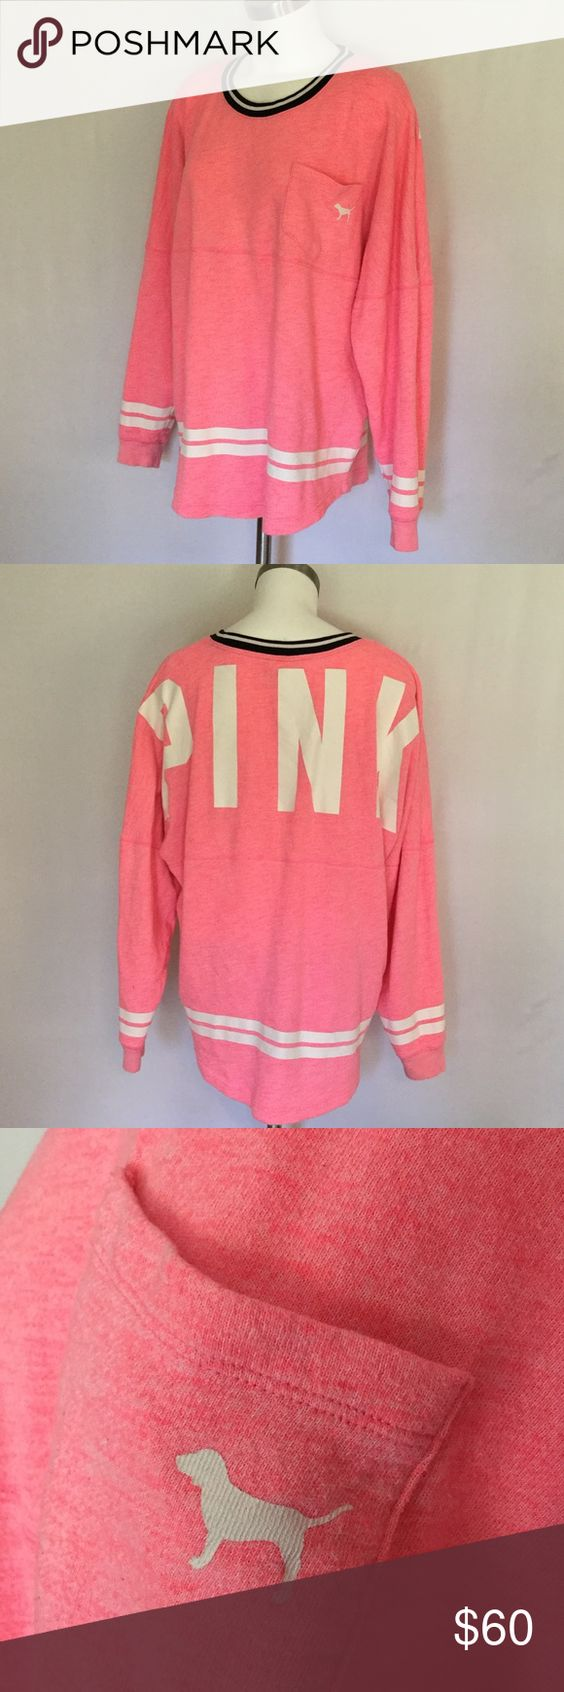 Victoria Secret Pink Varsity Crew 🍂 Victoria Secret Pink Crew Neck in bright pink with white and black stripe details. Right front pocket with pink graphic dog. Pink graphic on back of oversized light weight sweatshirt fabric. Very soft terry fabric. It is a longer oversized tunic style with back shirt round bottom. Looks awesome with leggings or skinny jeans. Size Large. Great condition. PINK Victoria's Secret Tops